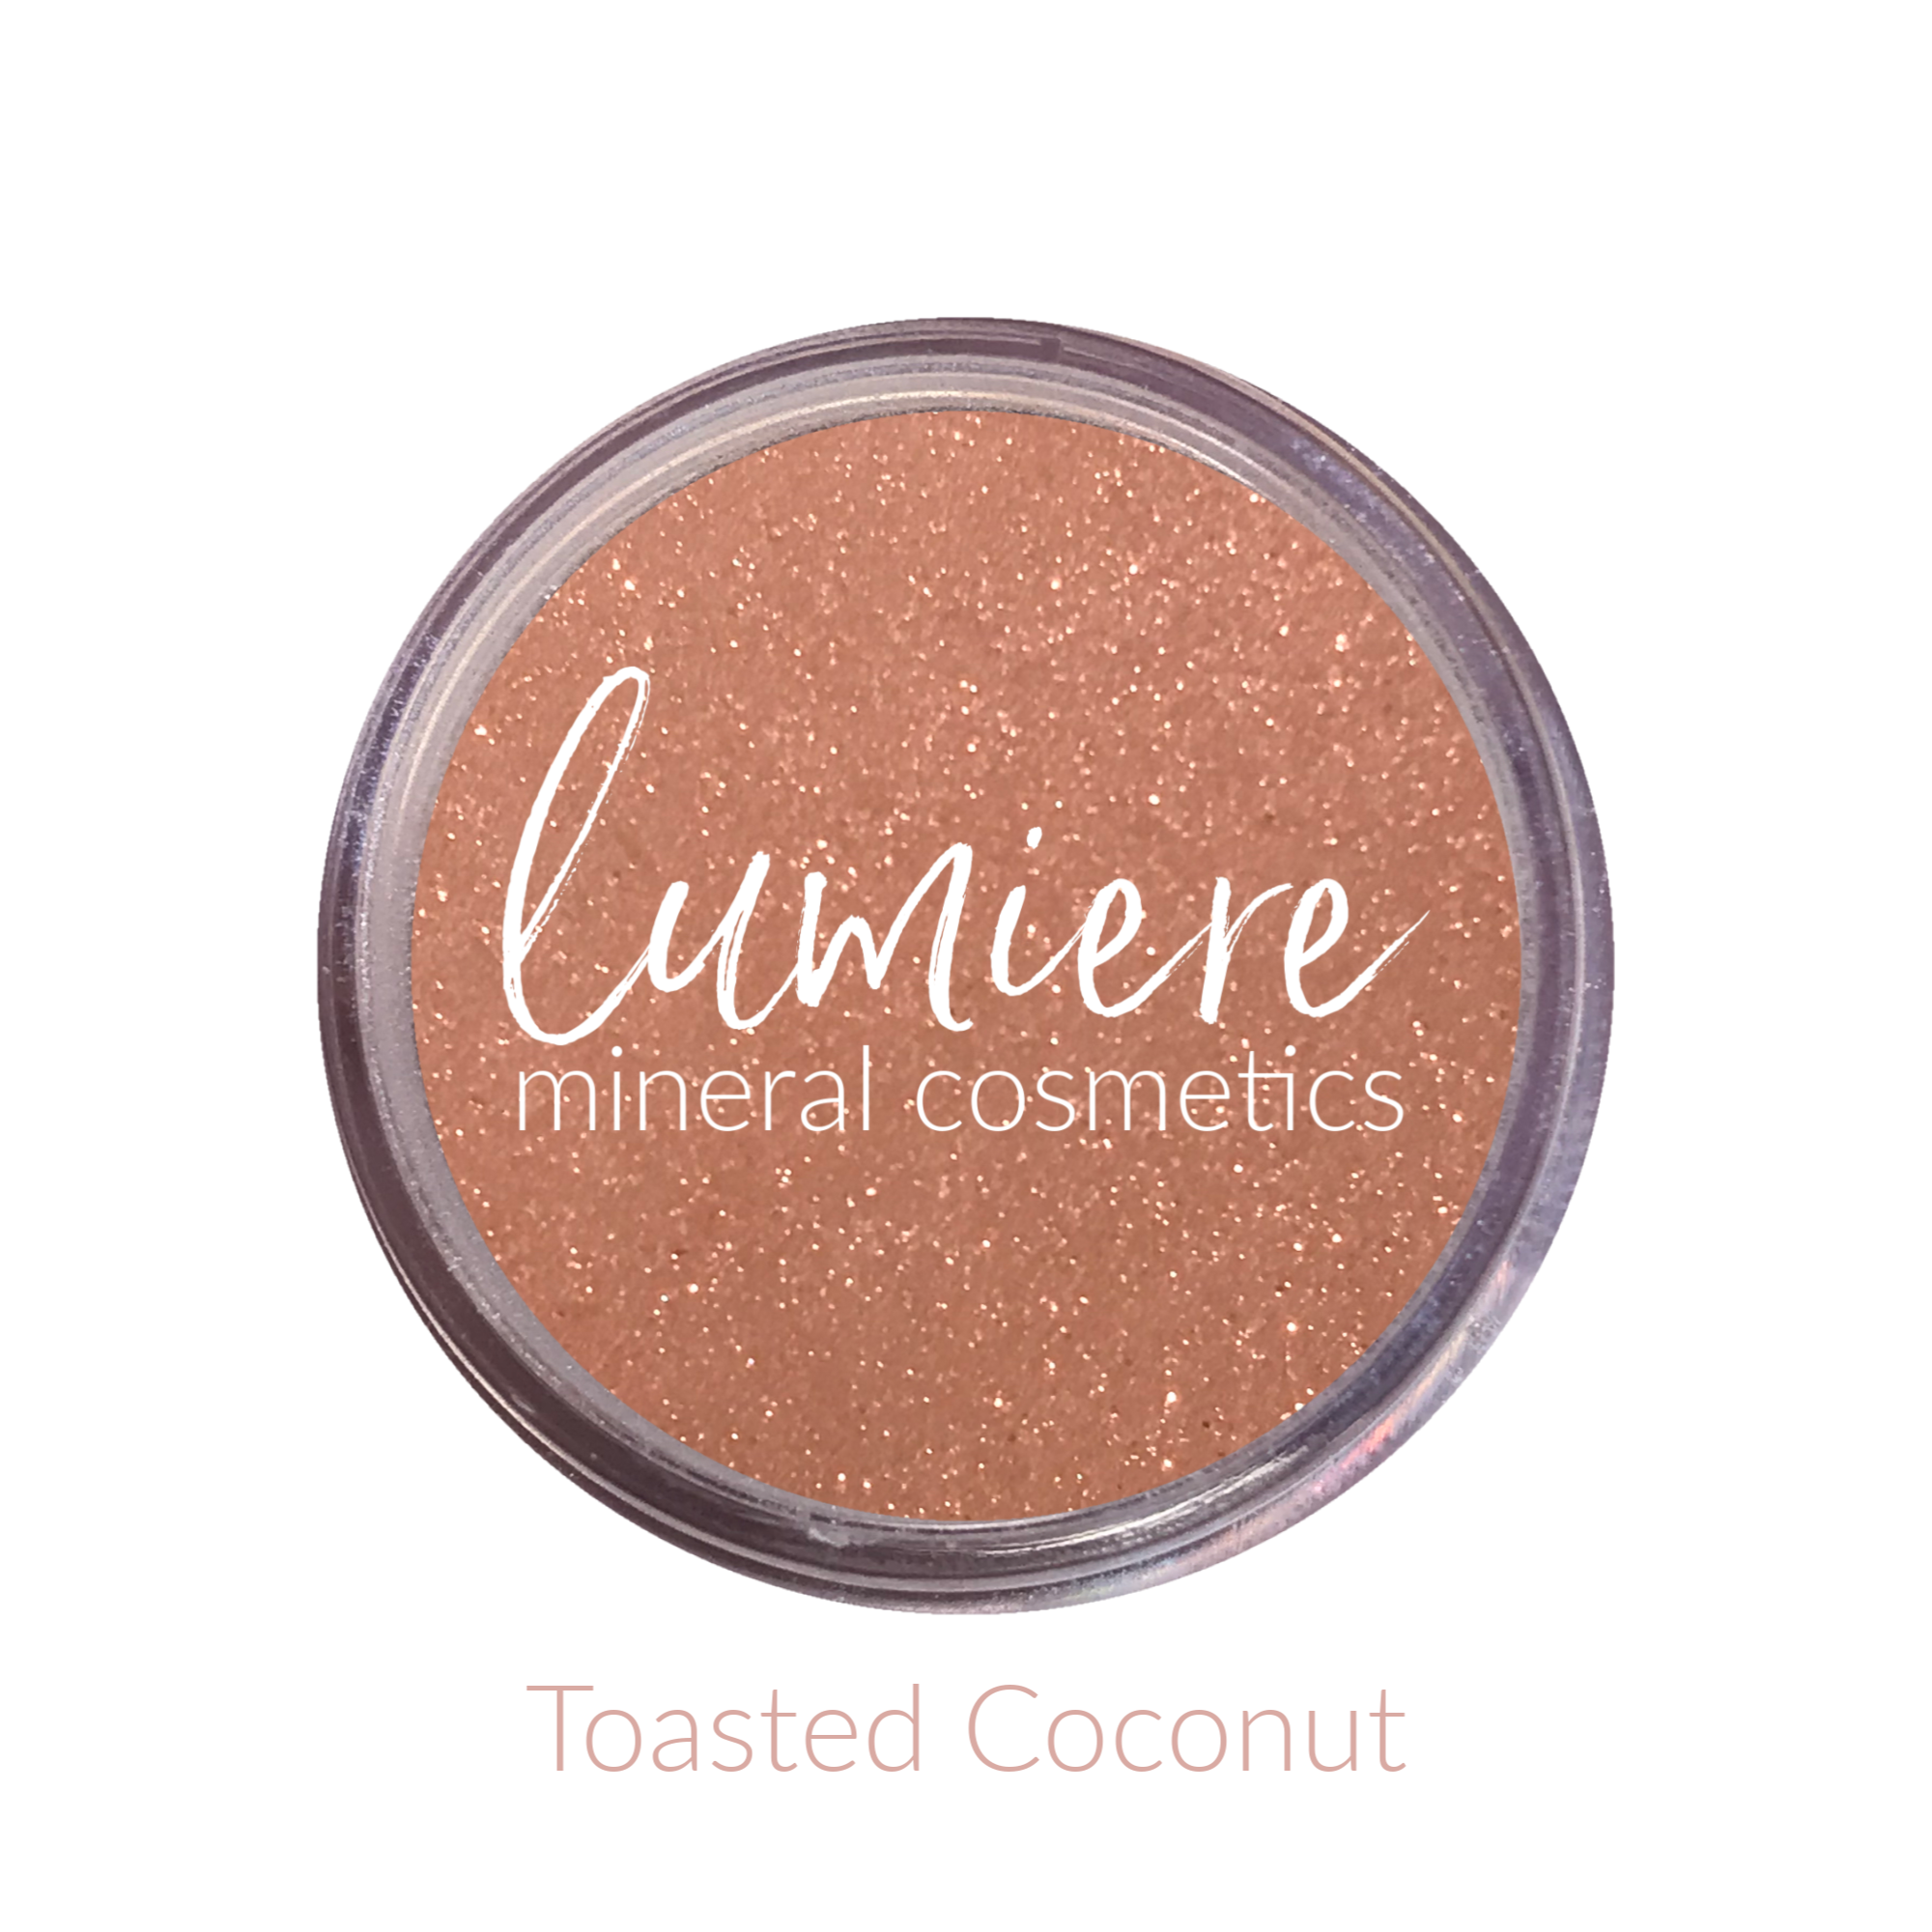 Toasted Coconut Blush